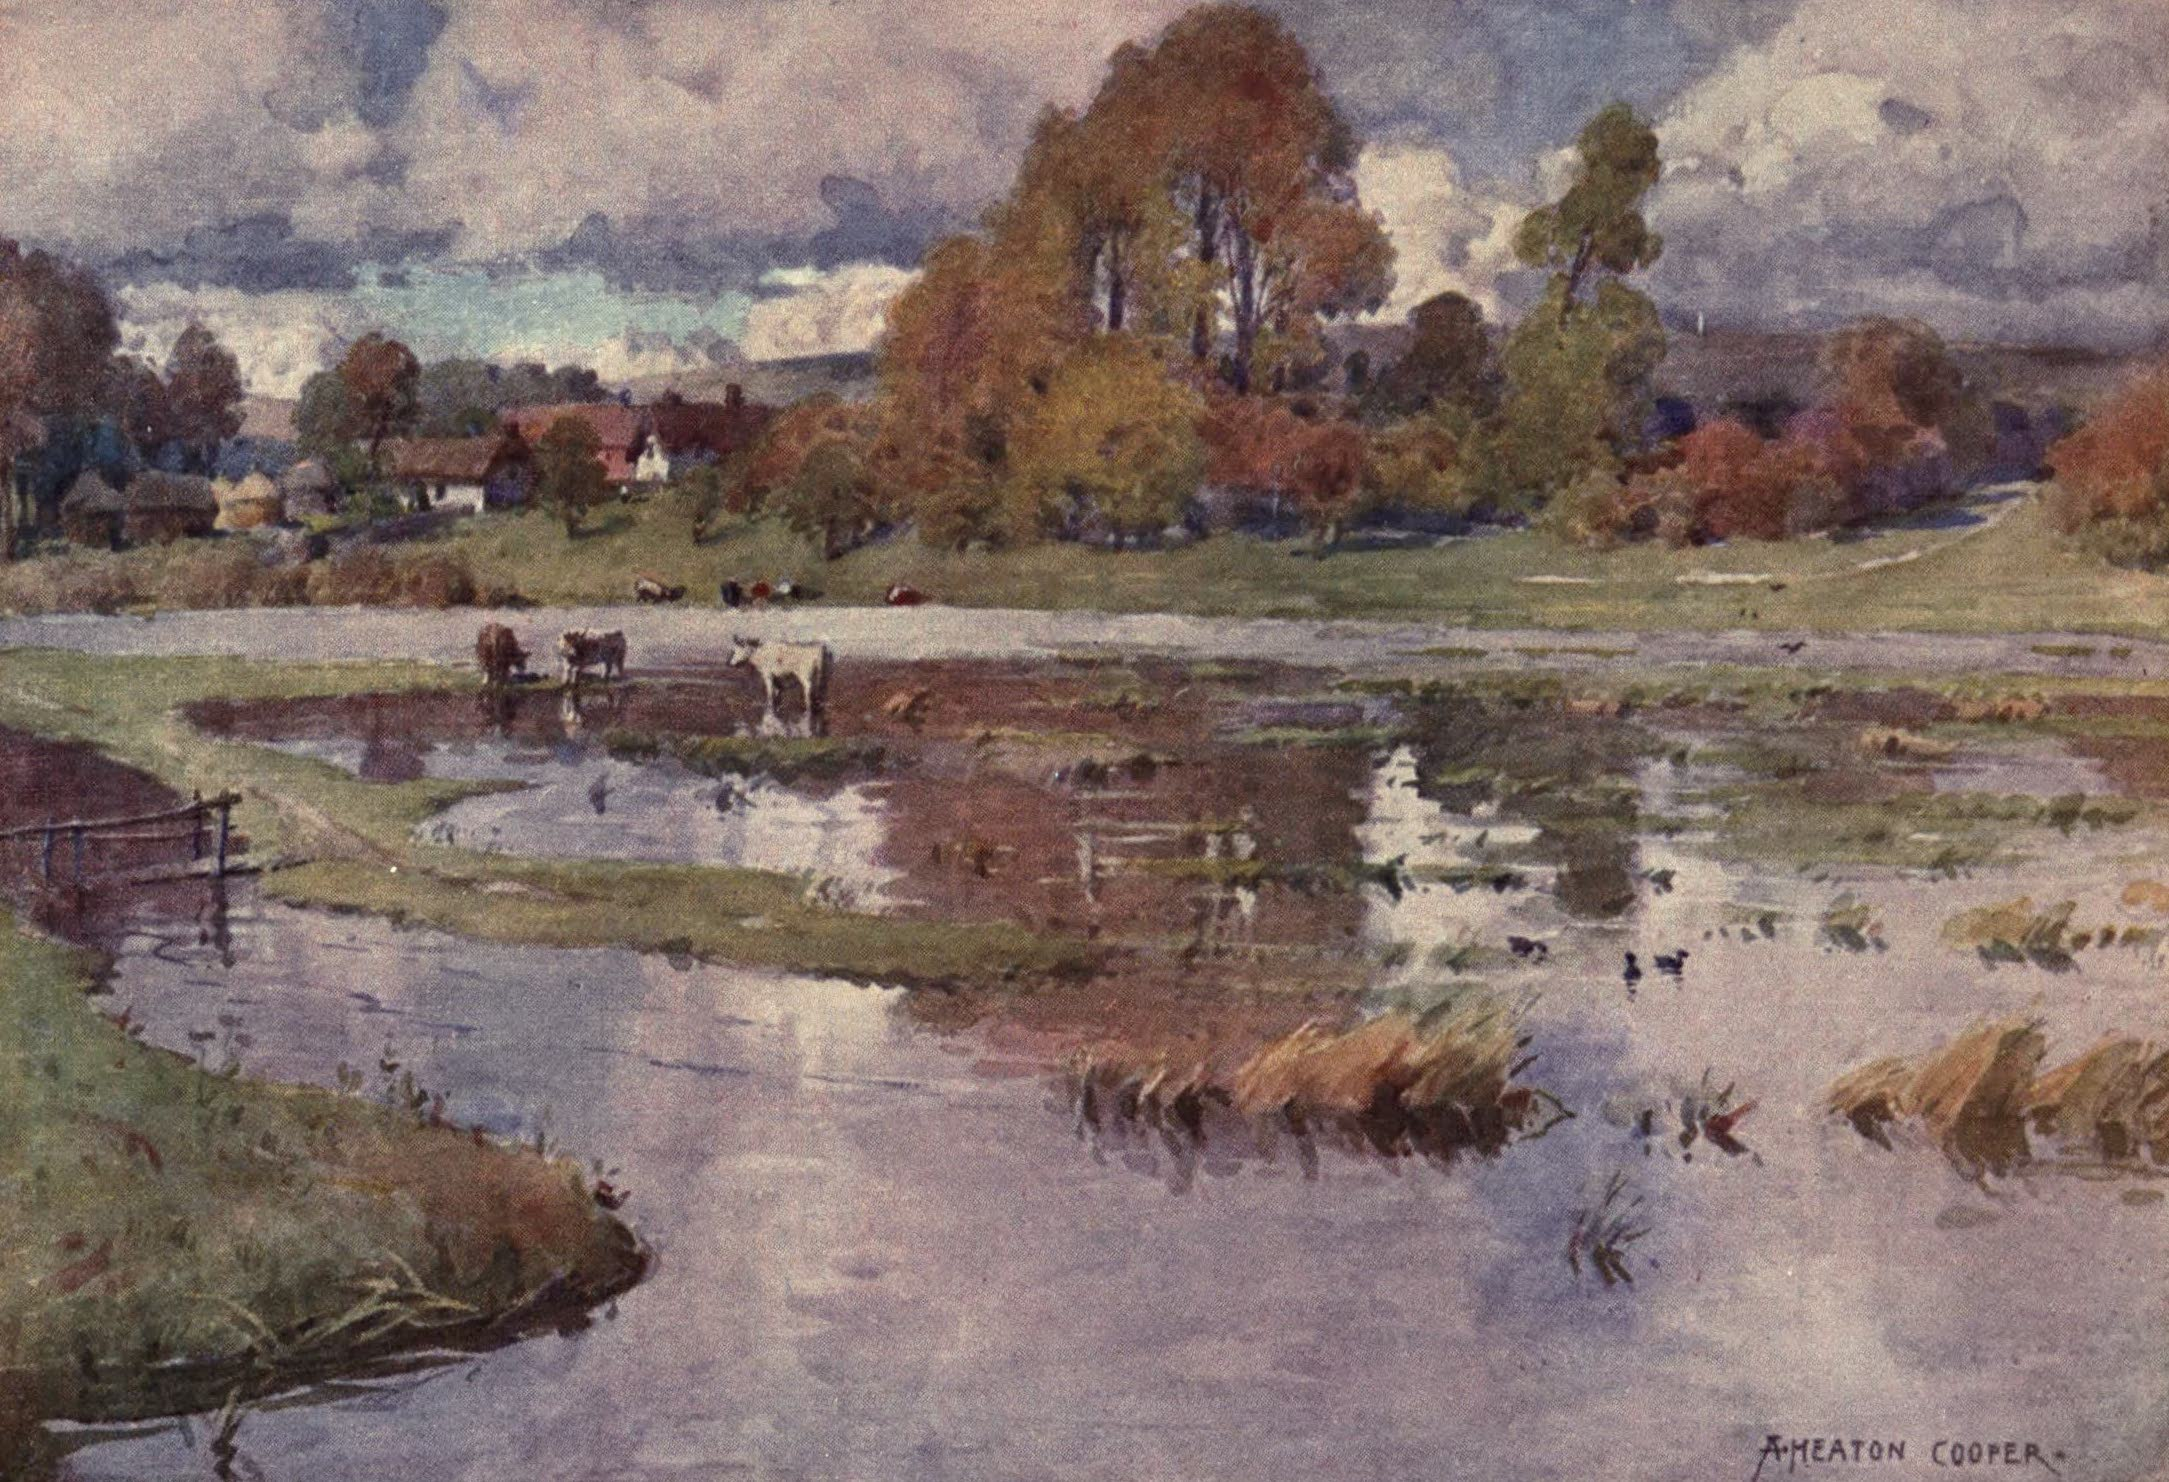 Isle of Wight Painted and Described - Water Meadows of the Yar near Alverstone (1908)